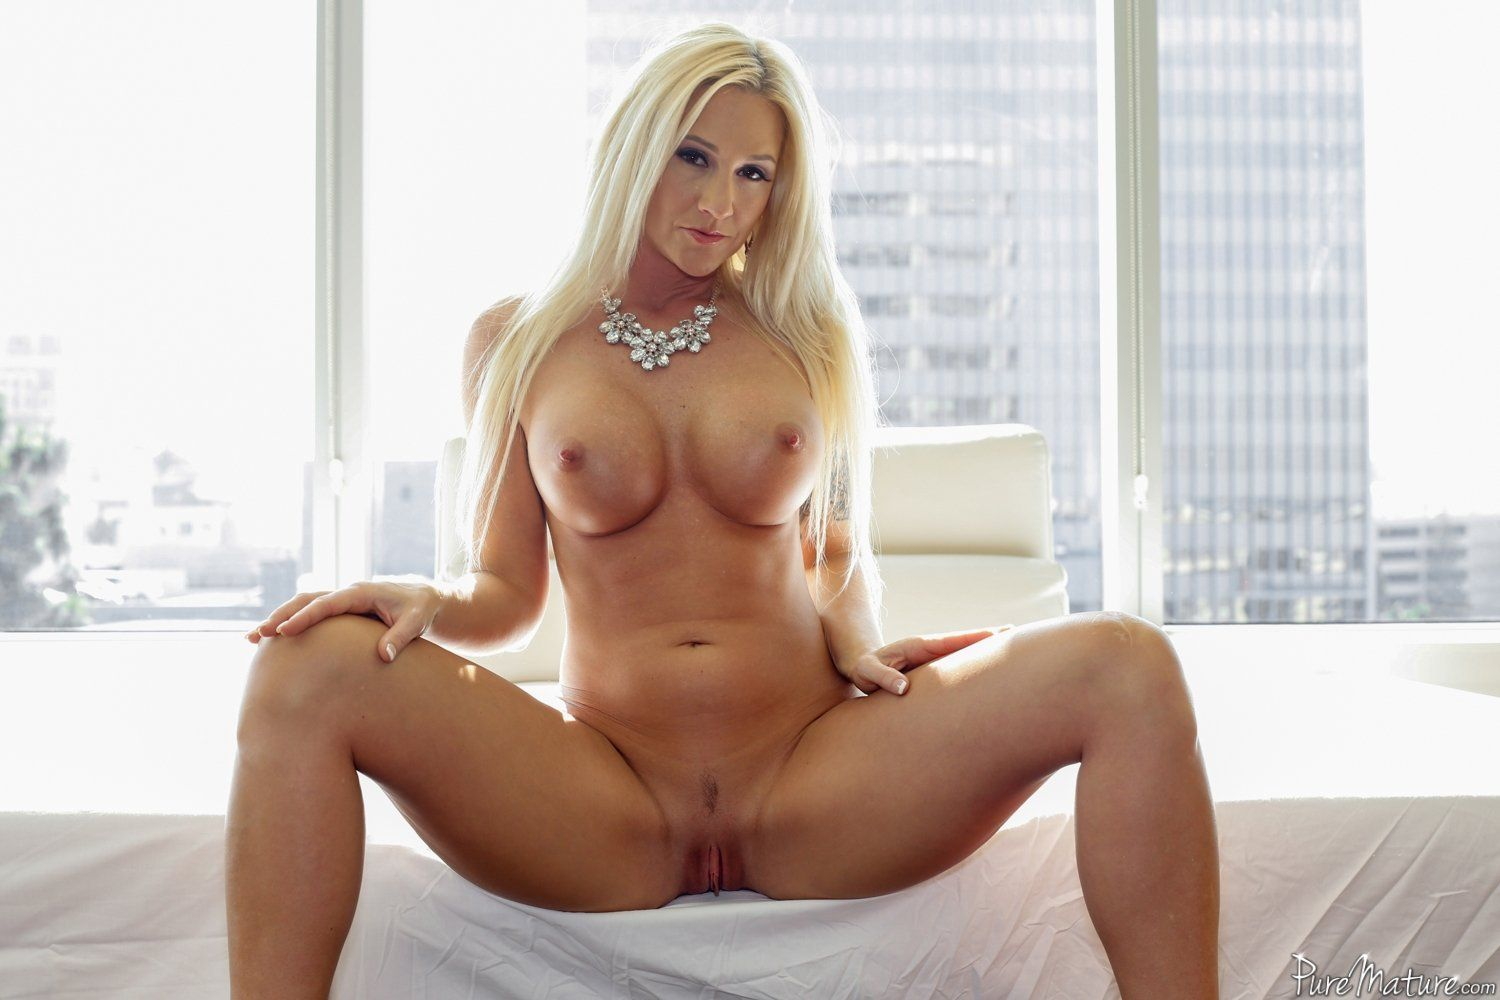 casually come hentai charming mother clips taboo really. And have